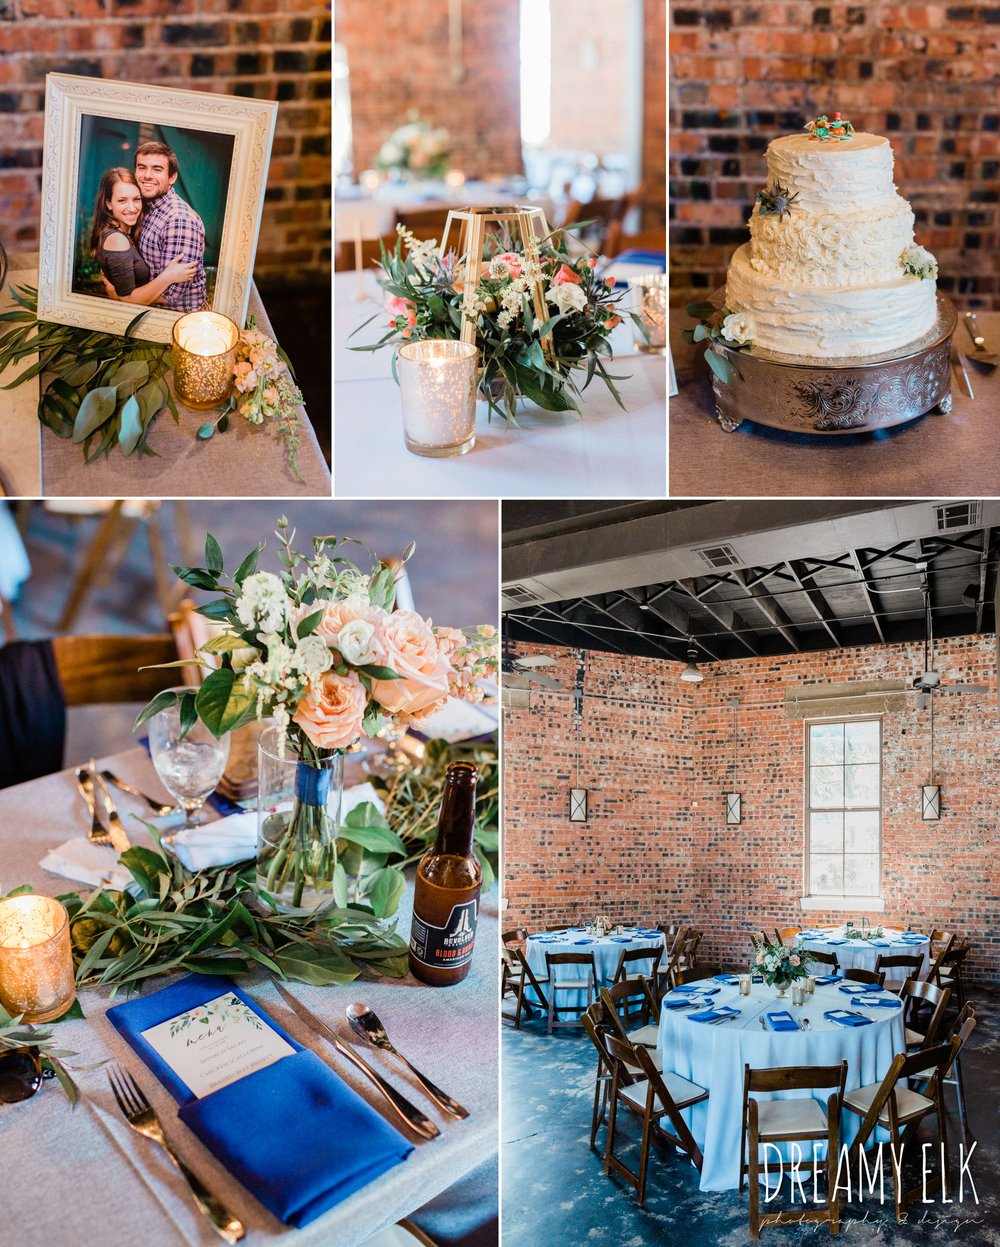 ashley and company, dvine cuisine, chalkboard signage, downtown 202, unforgettable floral, spring wedding photo college station texas, dreamy elk photography and design